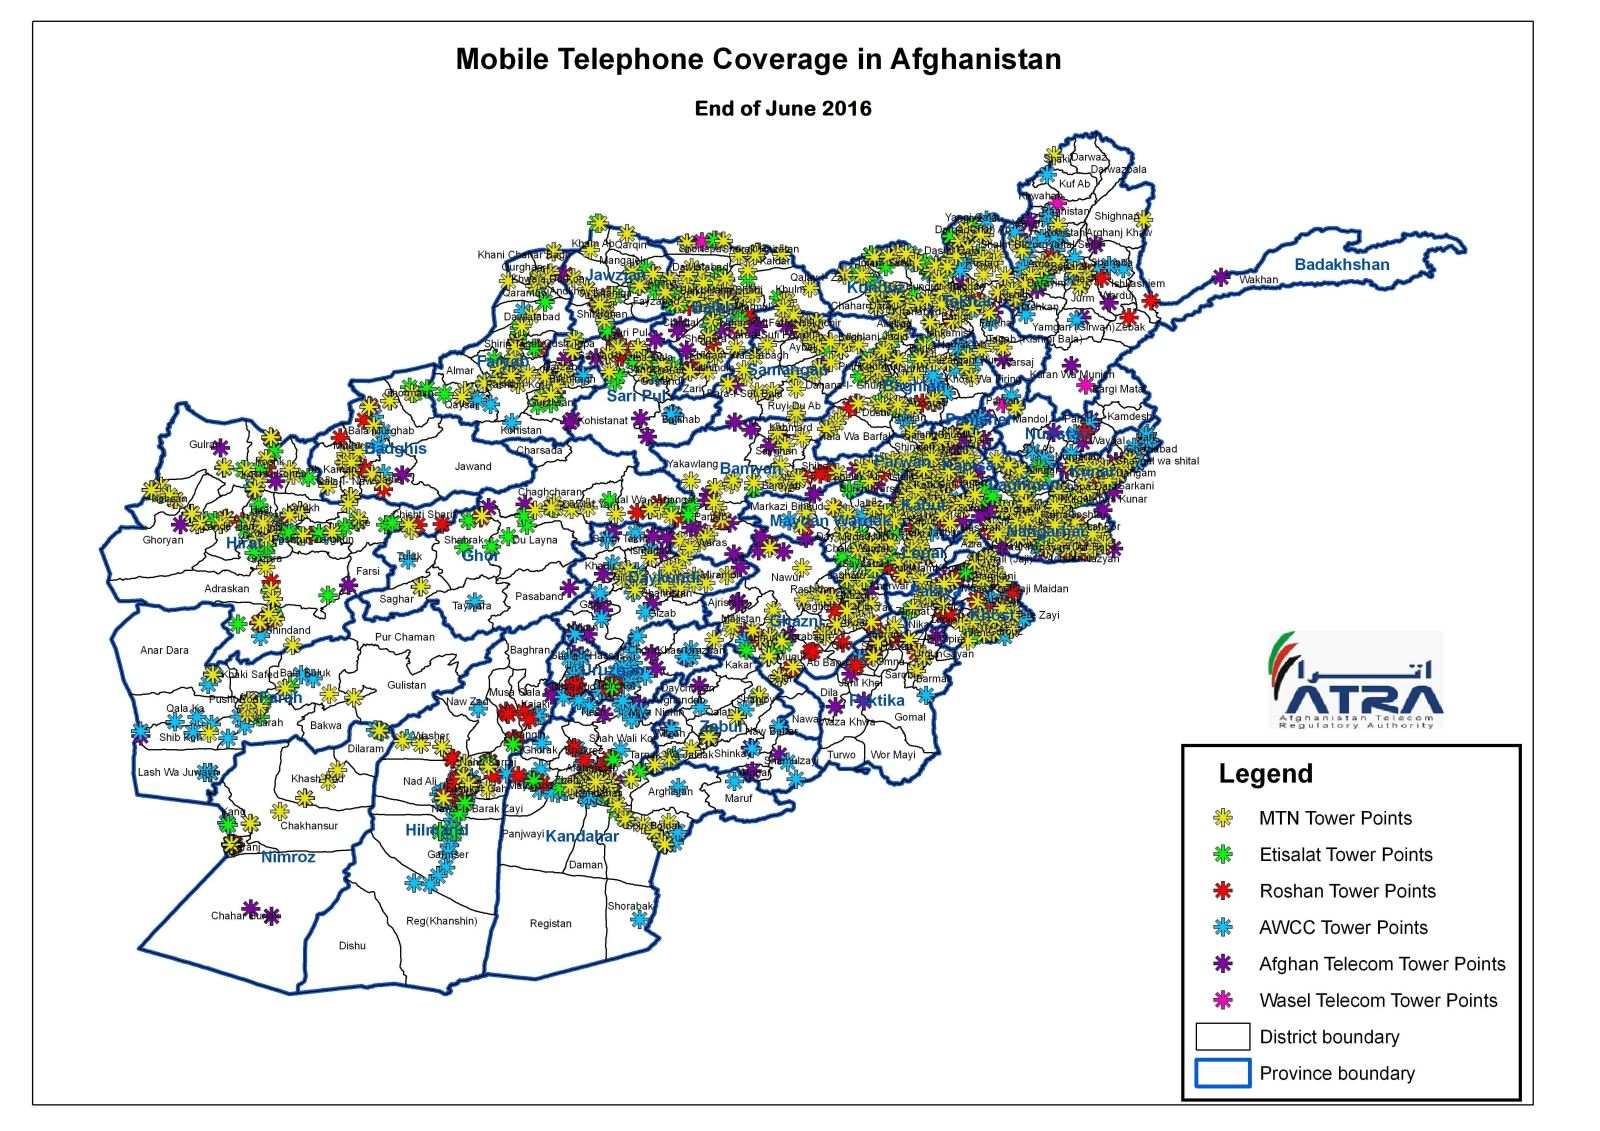 Operator Watch Blog: Afghanistan: 4G picking up pace